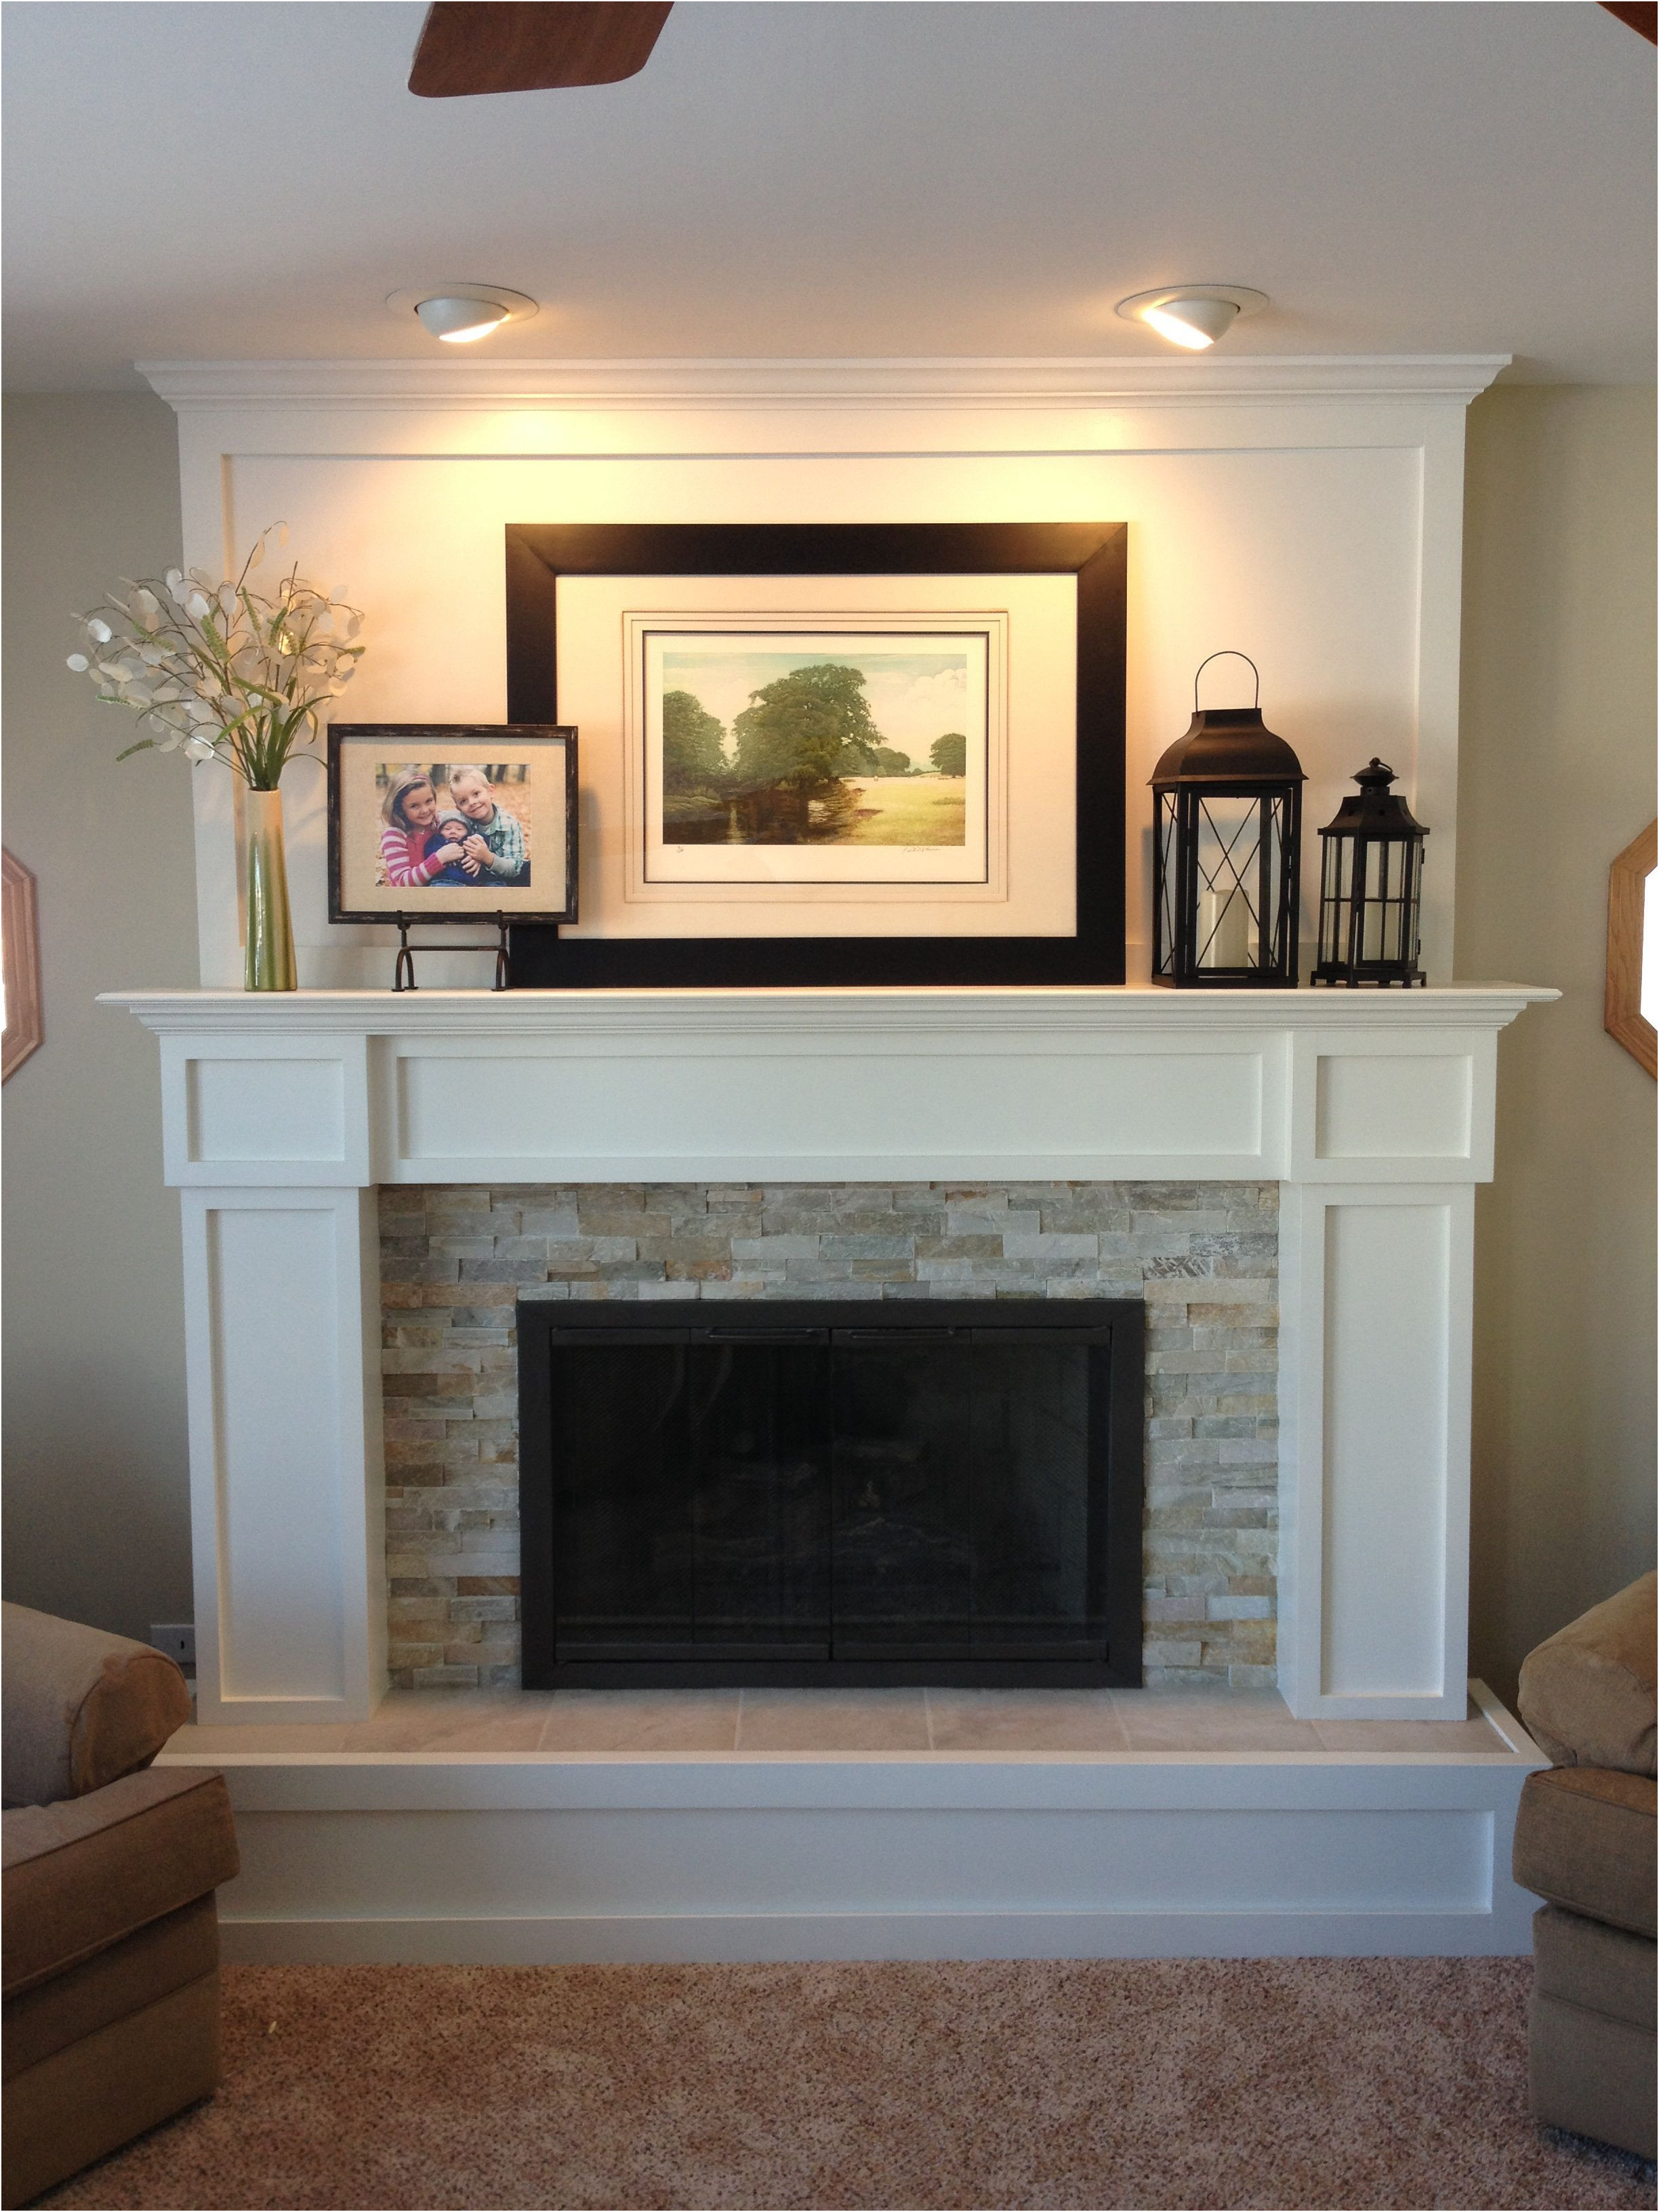 Fireplace Painting Ideas Unique 9 Easy and Cheap Cool Ideas Fireplace Drawing Chairs